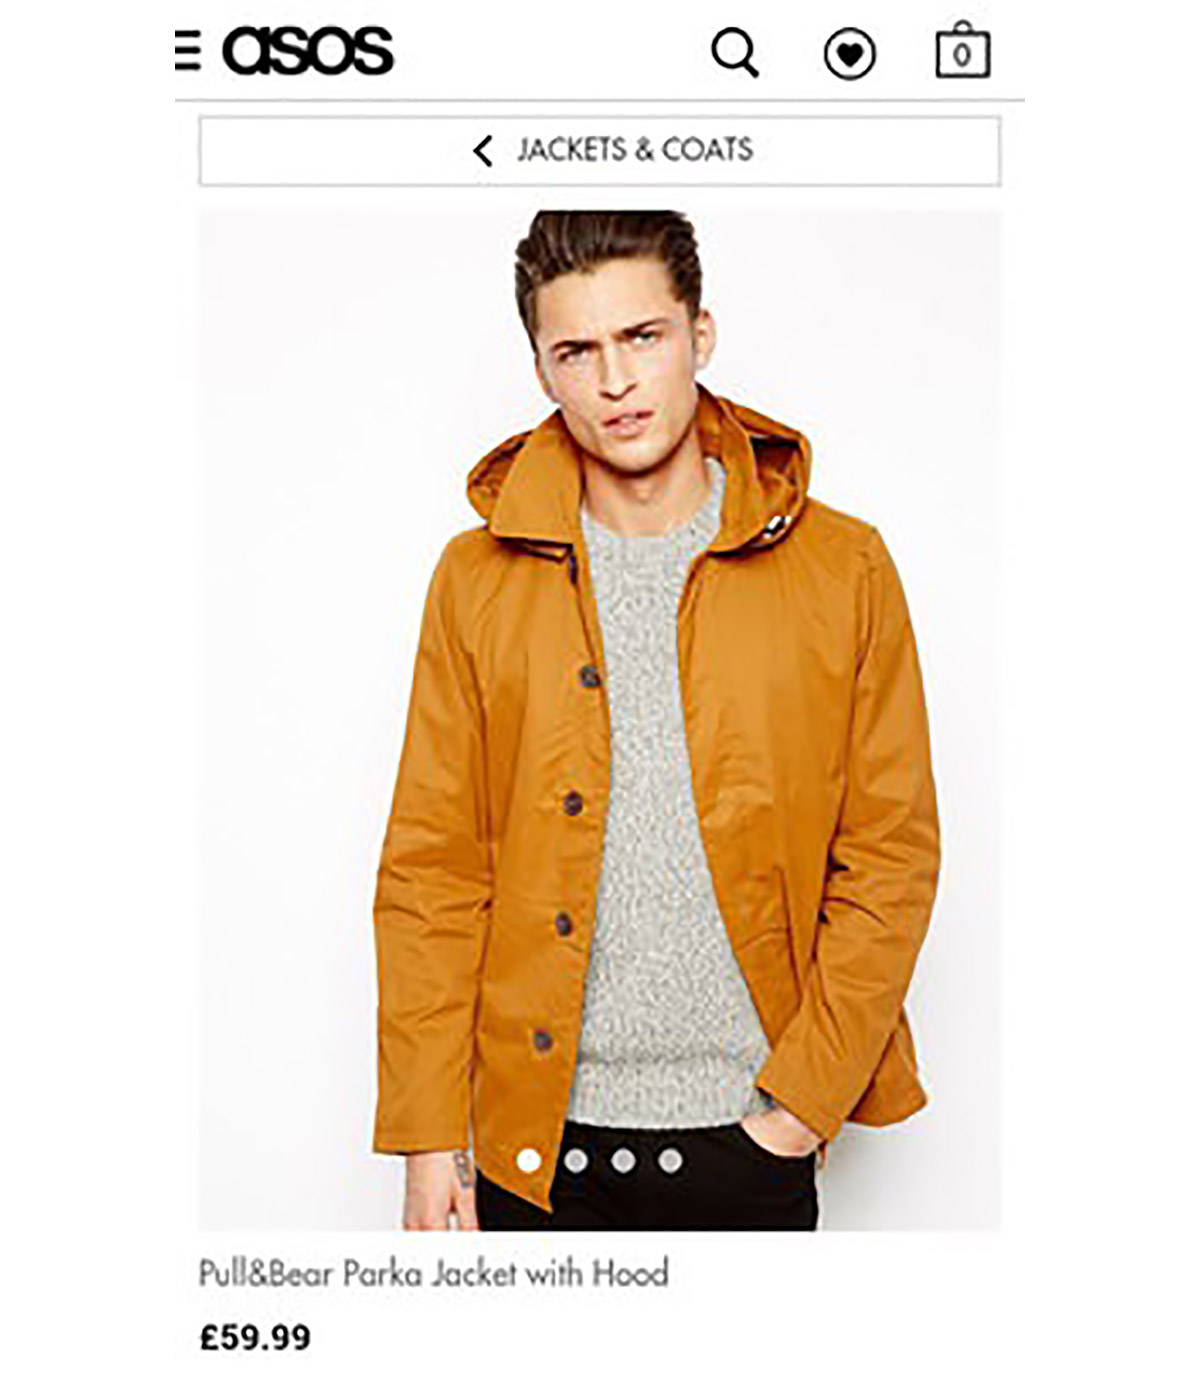 asos product page